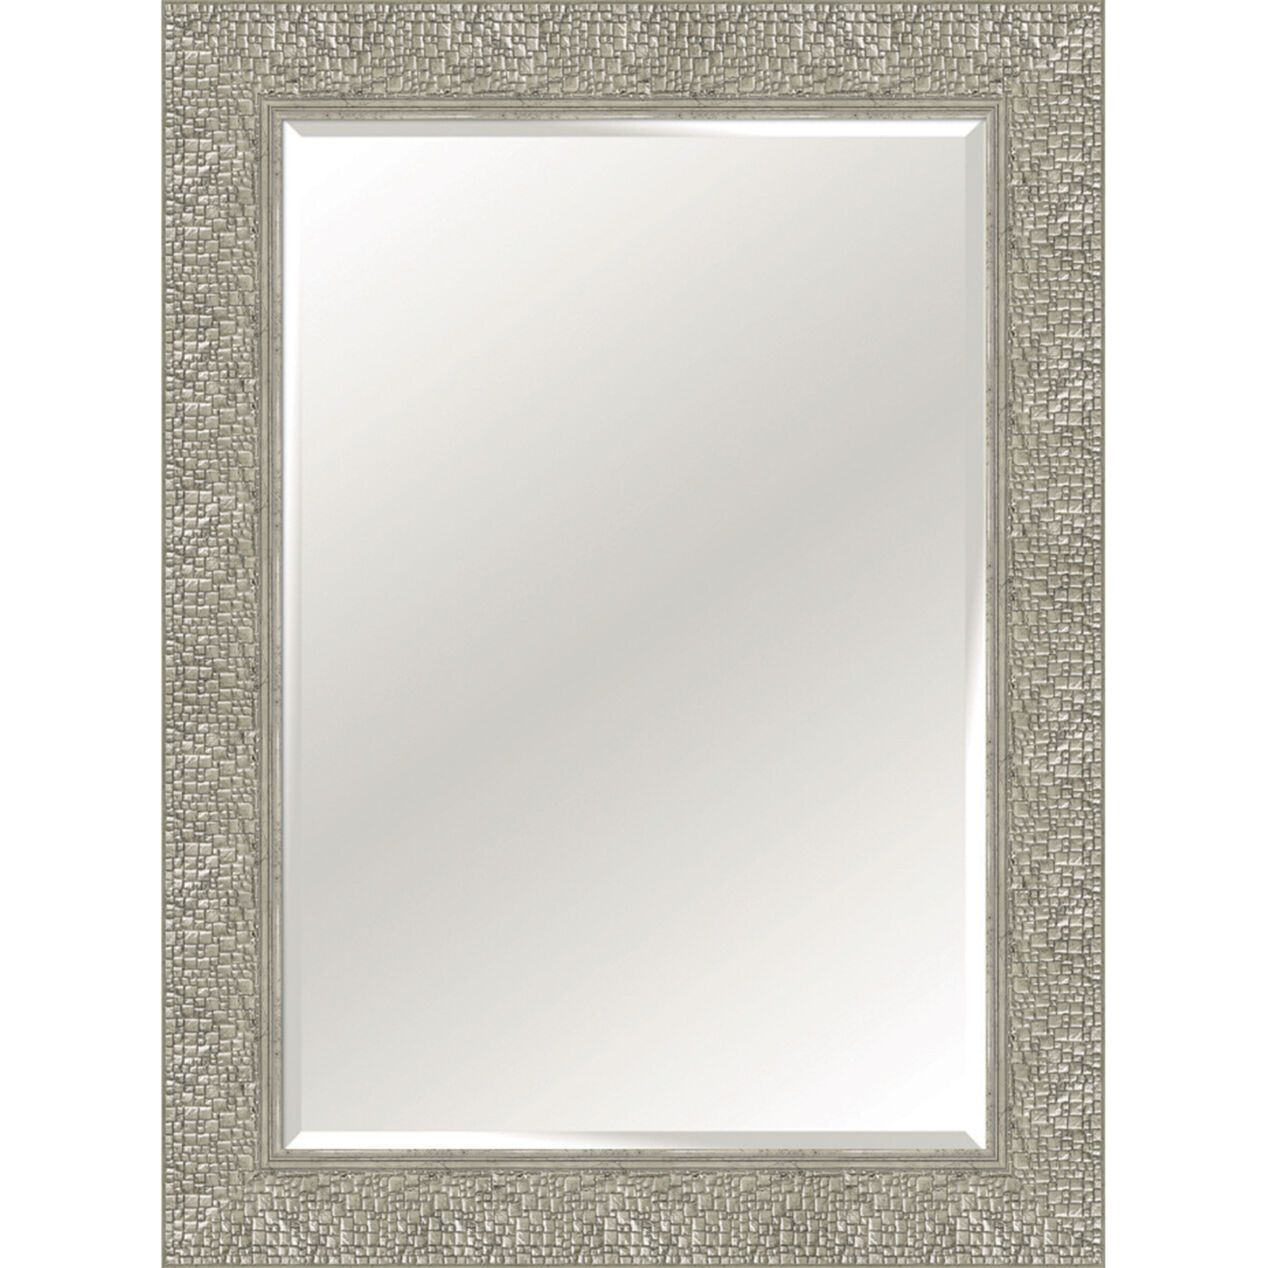 32x44 Rectangle Plastic Woven Squares Distressed Silver Wall Mirror Silver Wall Mirror Mirror Wall Mirror